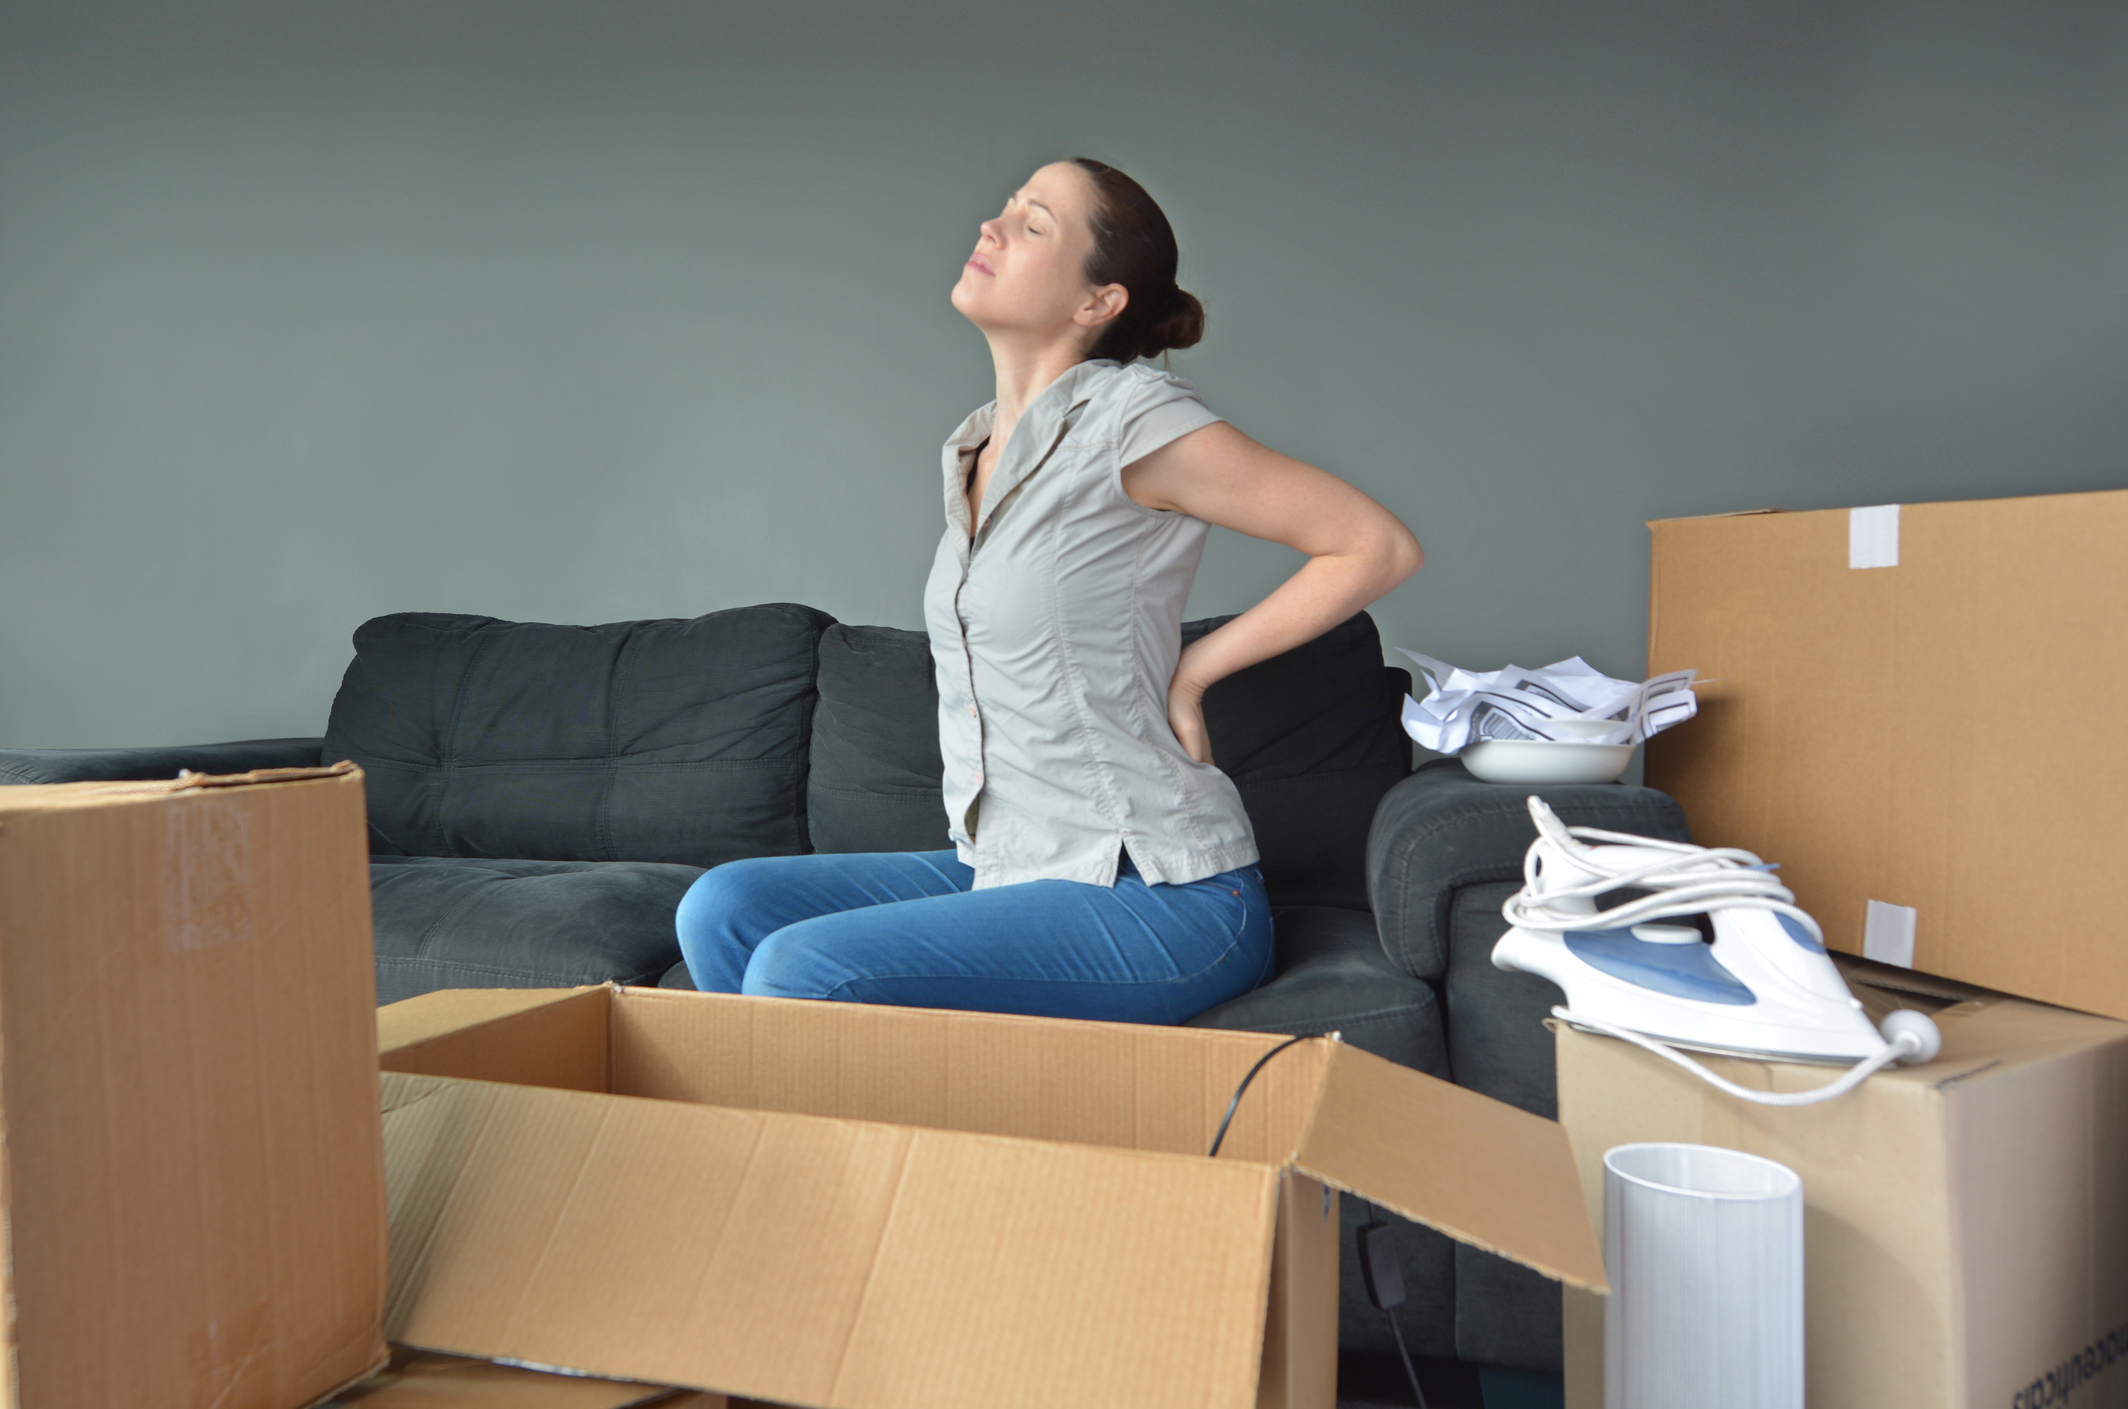 Woman holding her back in pain while surrounded by boxes (Thinkstock/PA)